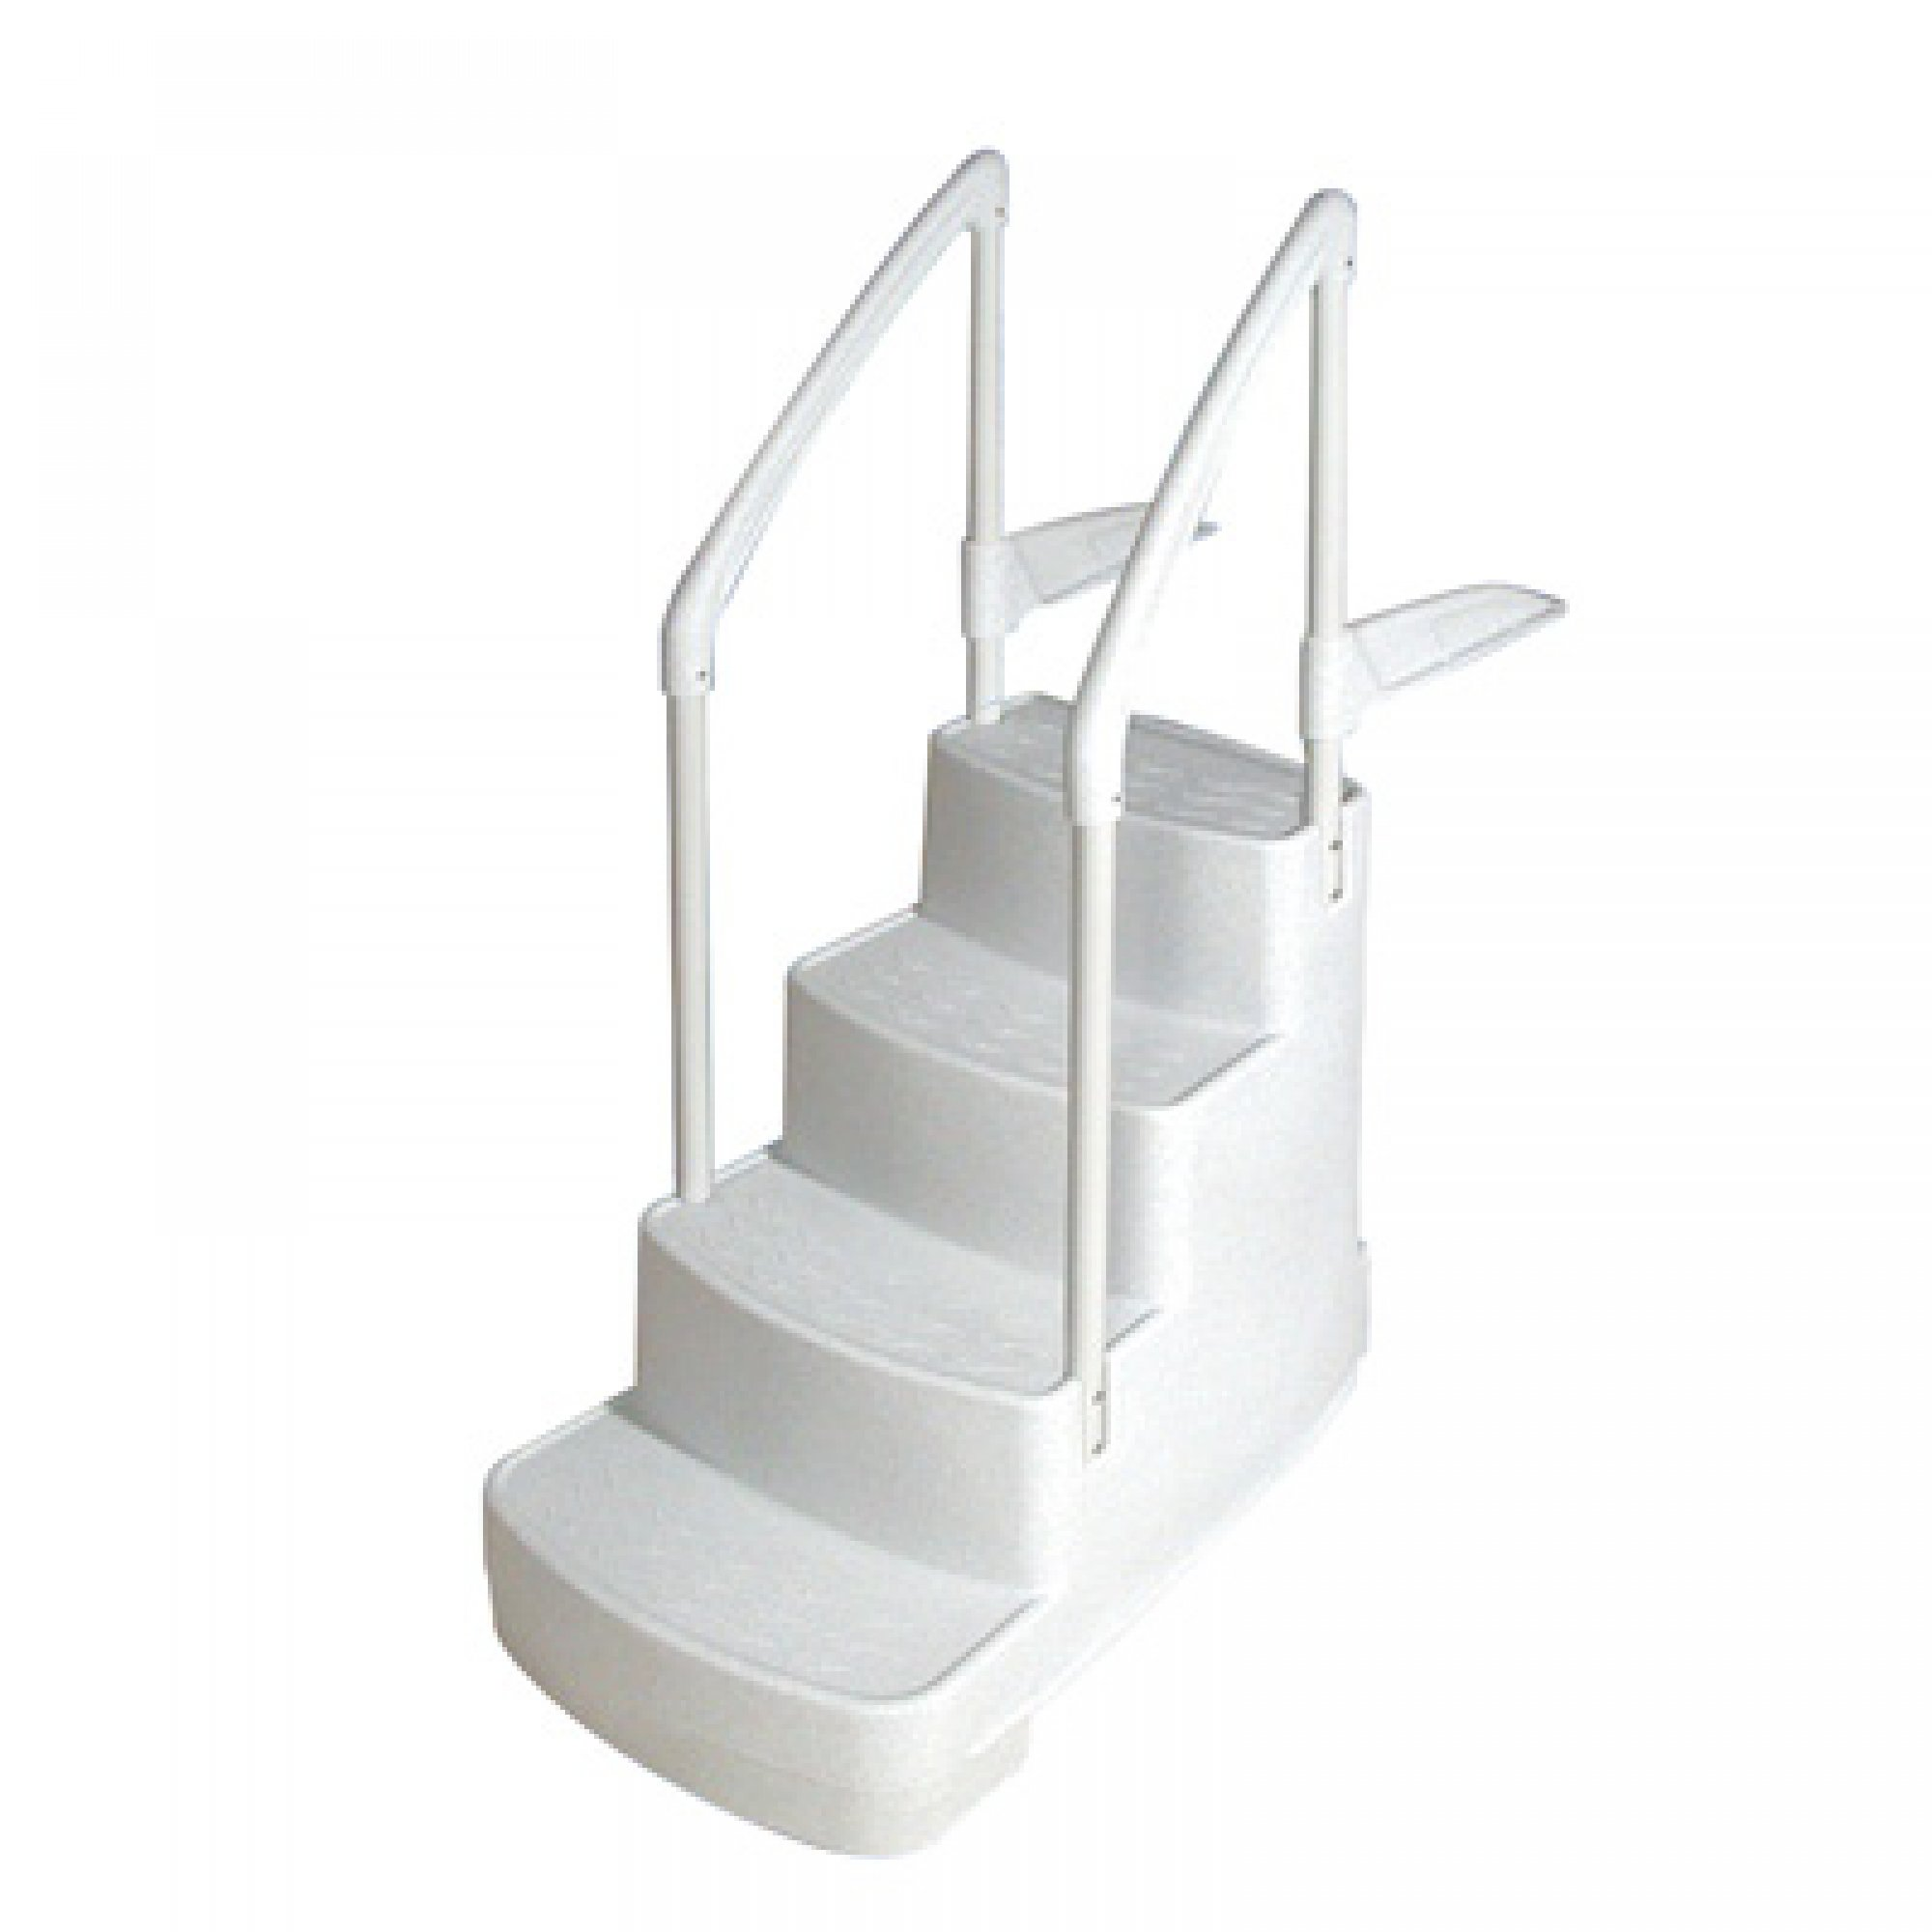 Pooltreppe Fiesta 499 00